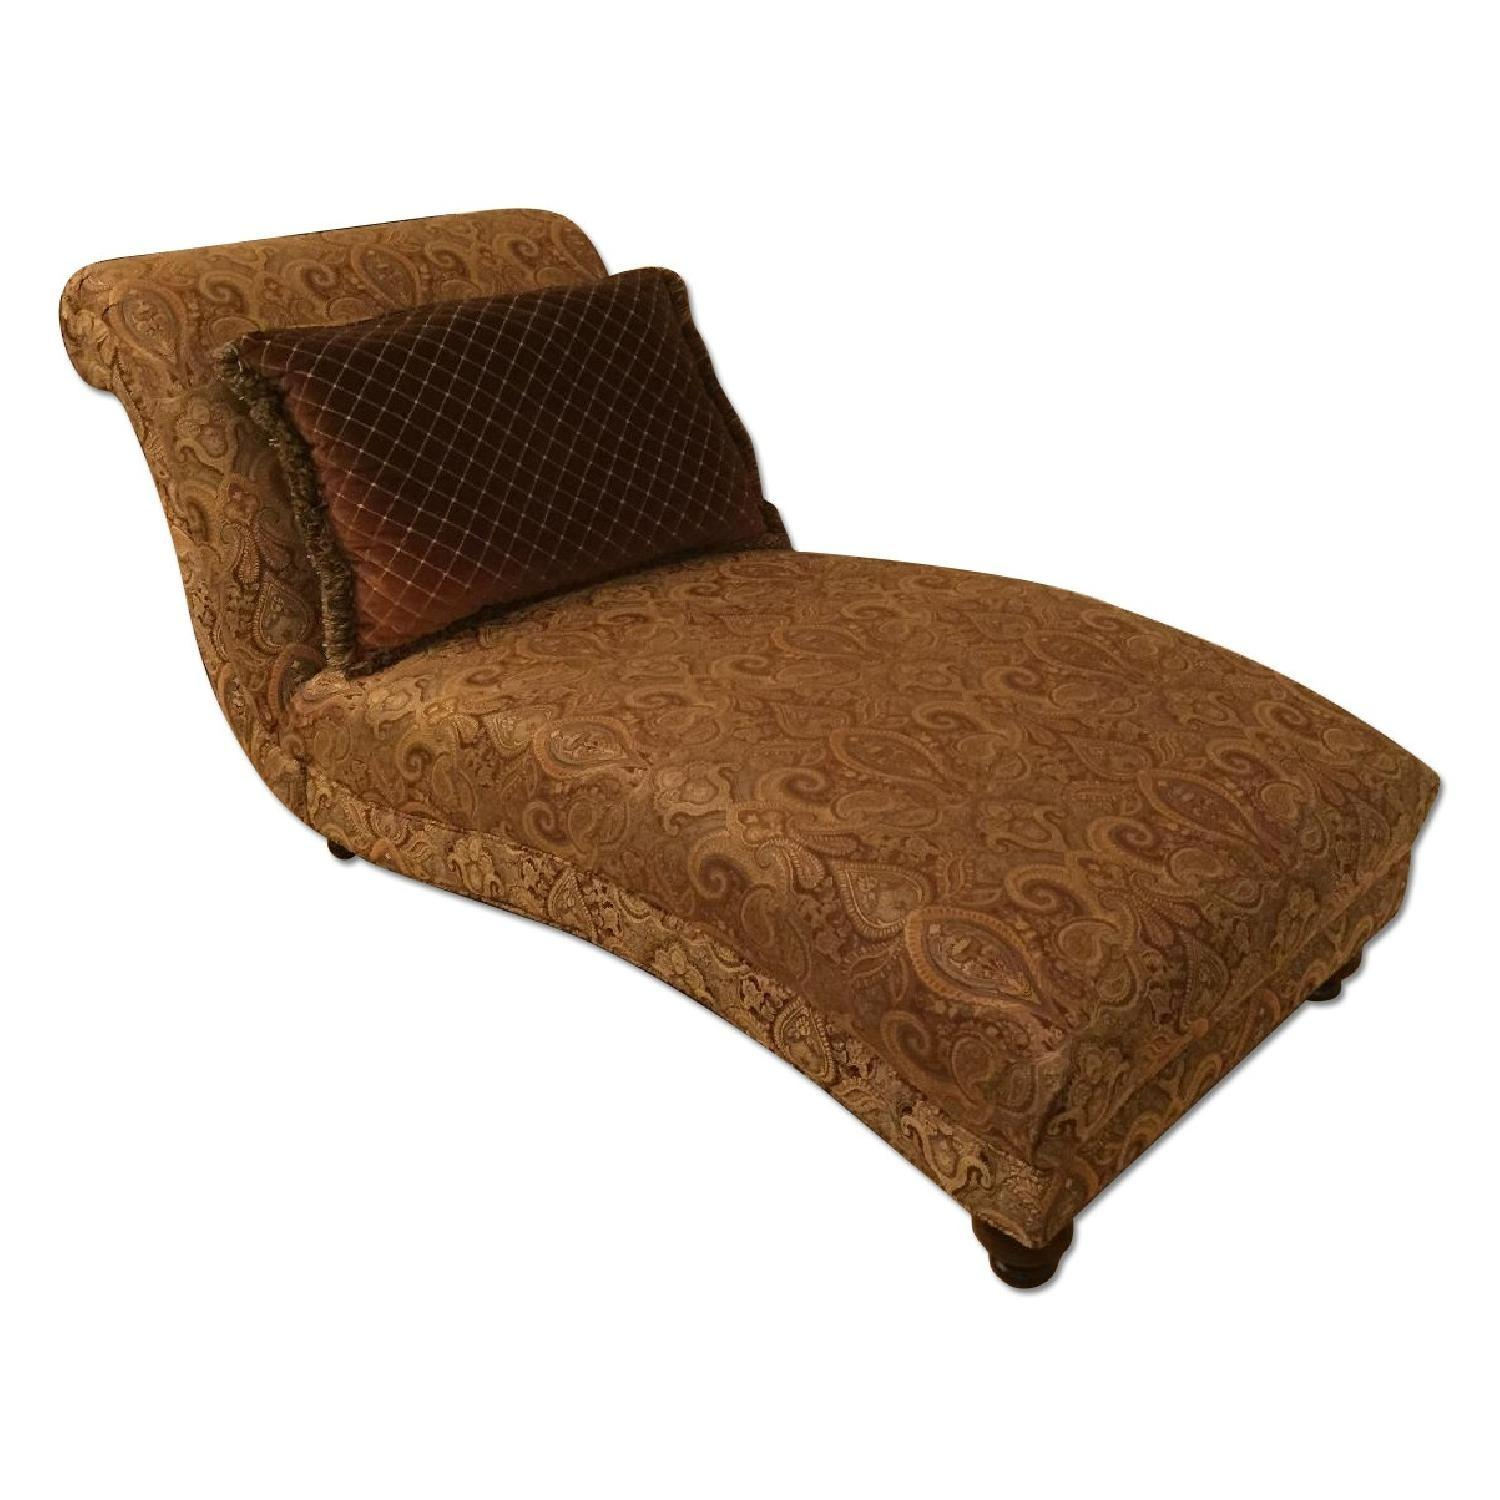 Cindy Crawford Collection Armless Chaise Lounge - image-1